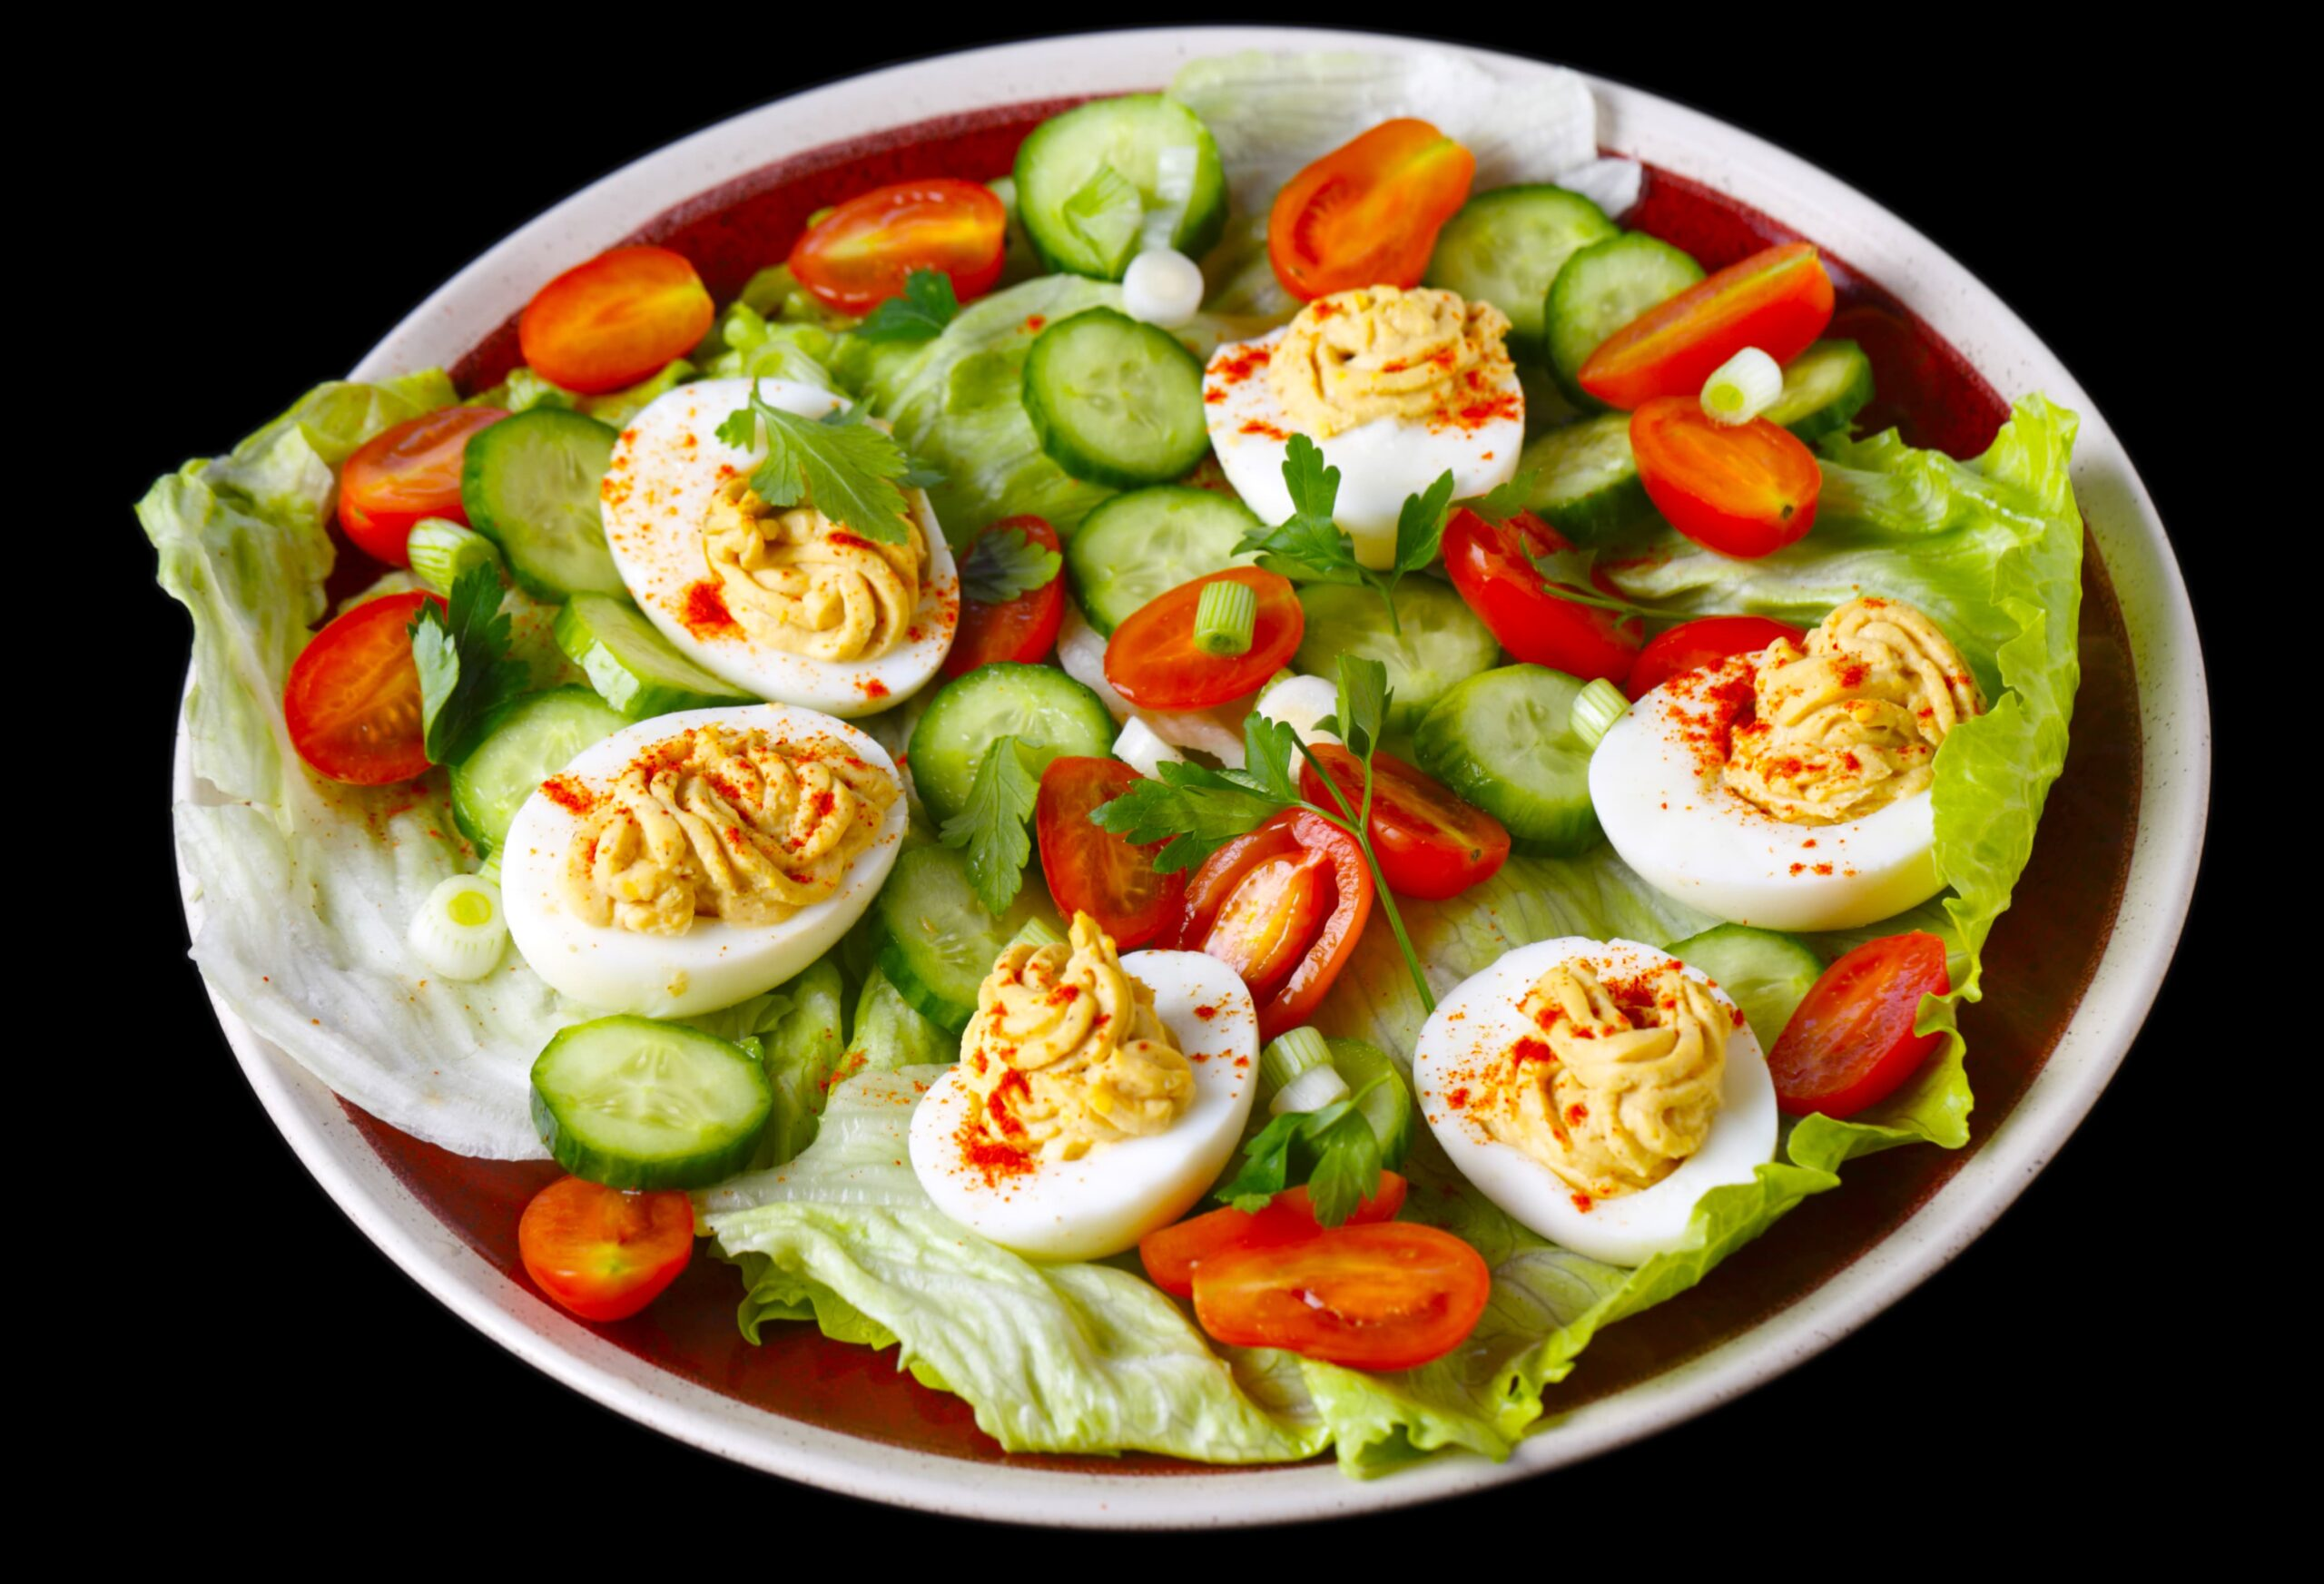 Diabetes-approved Side Dishes